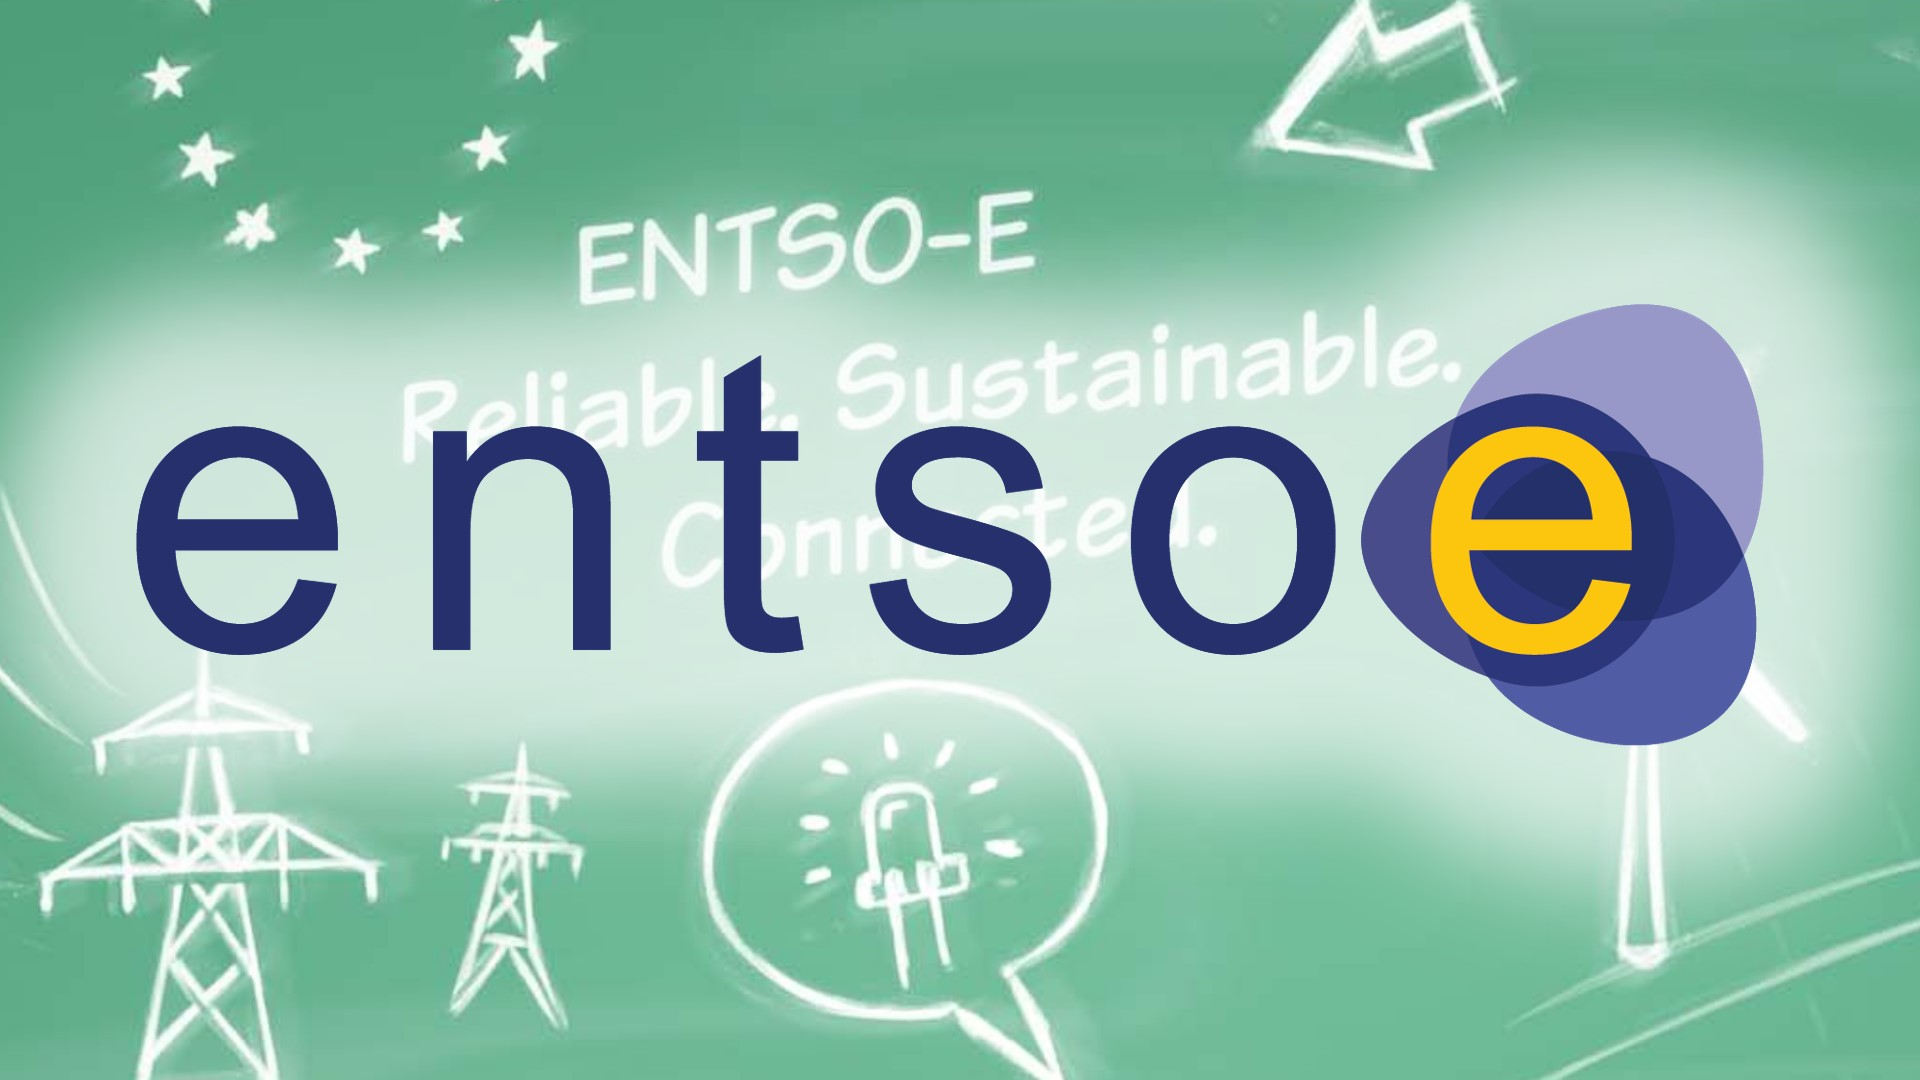 New ENTSO-E executive board completed